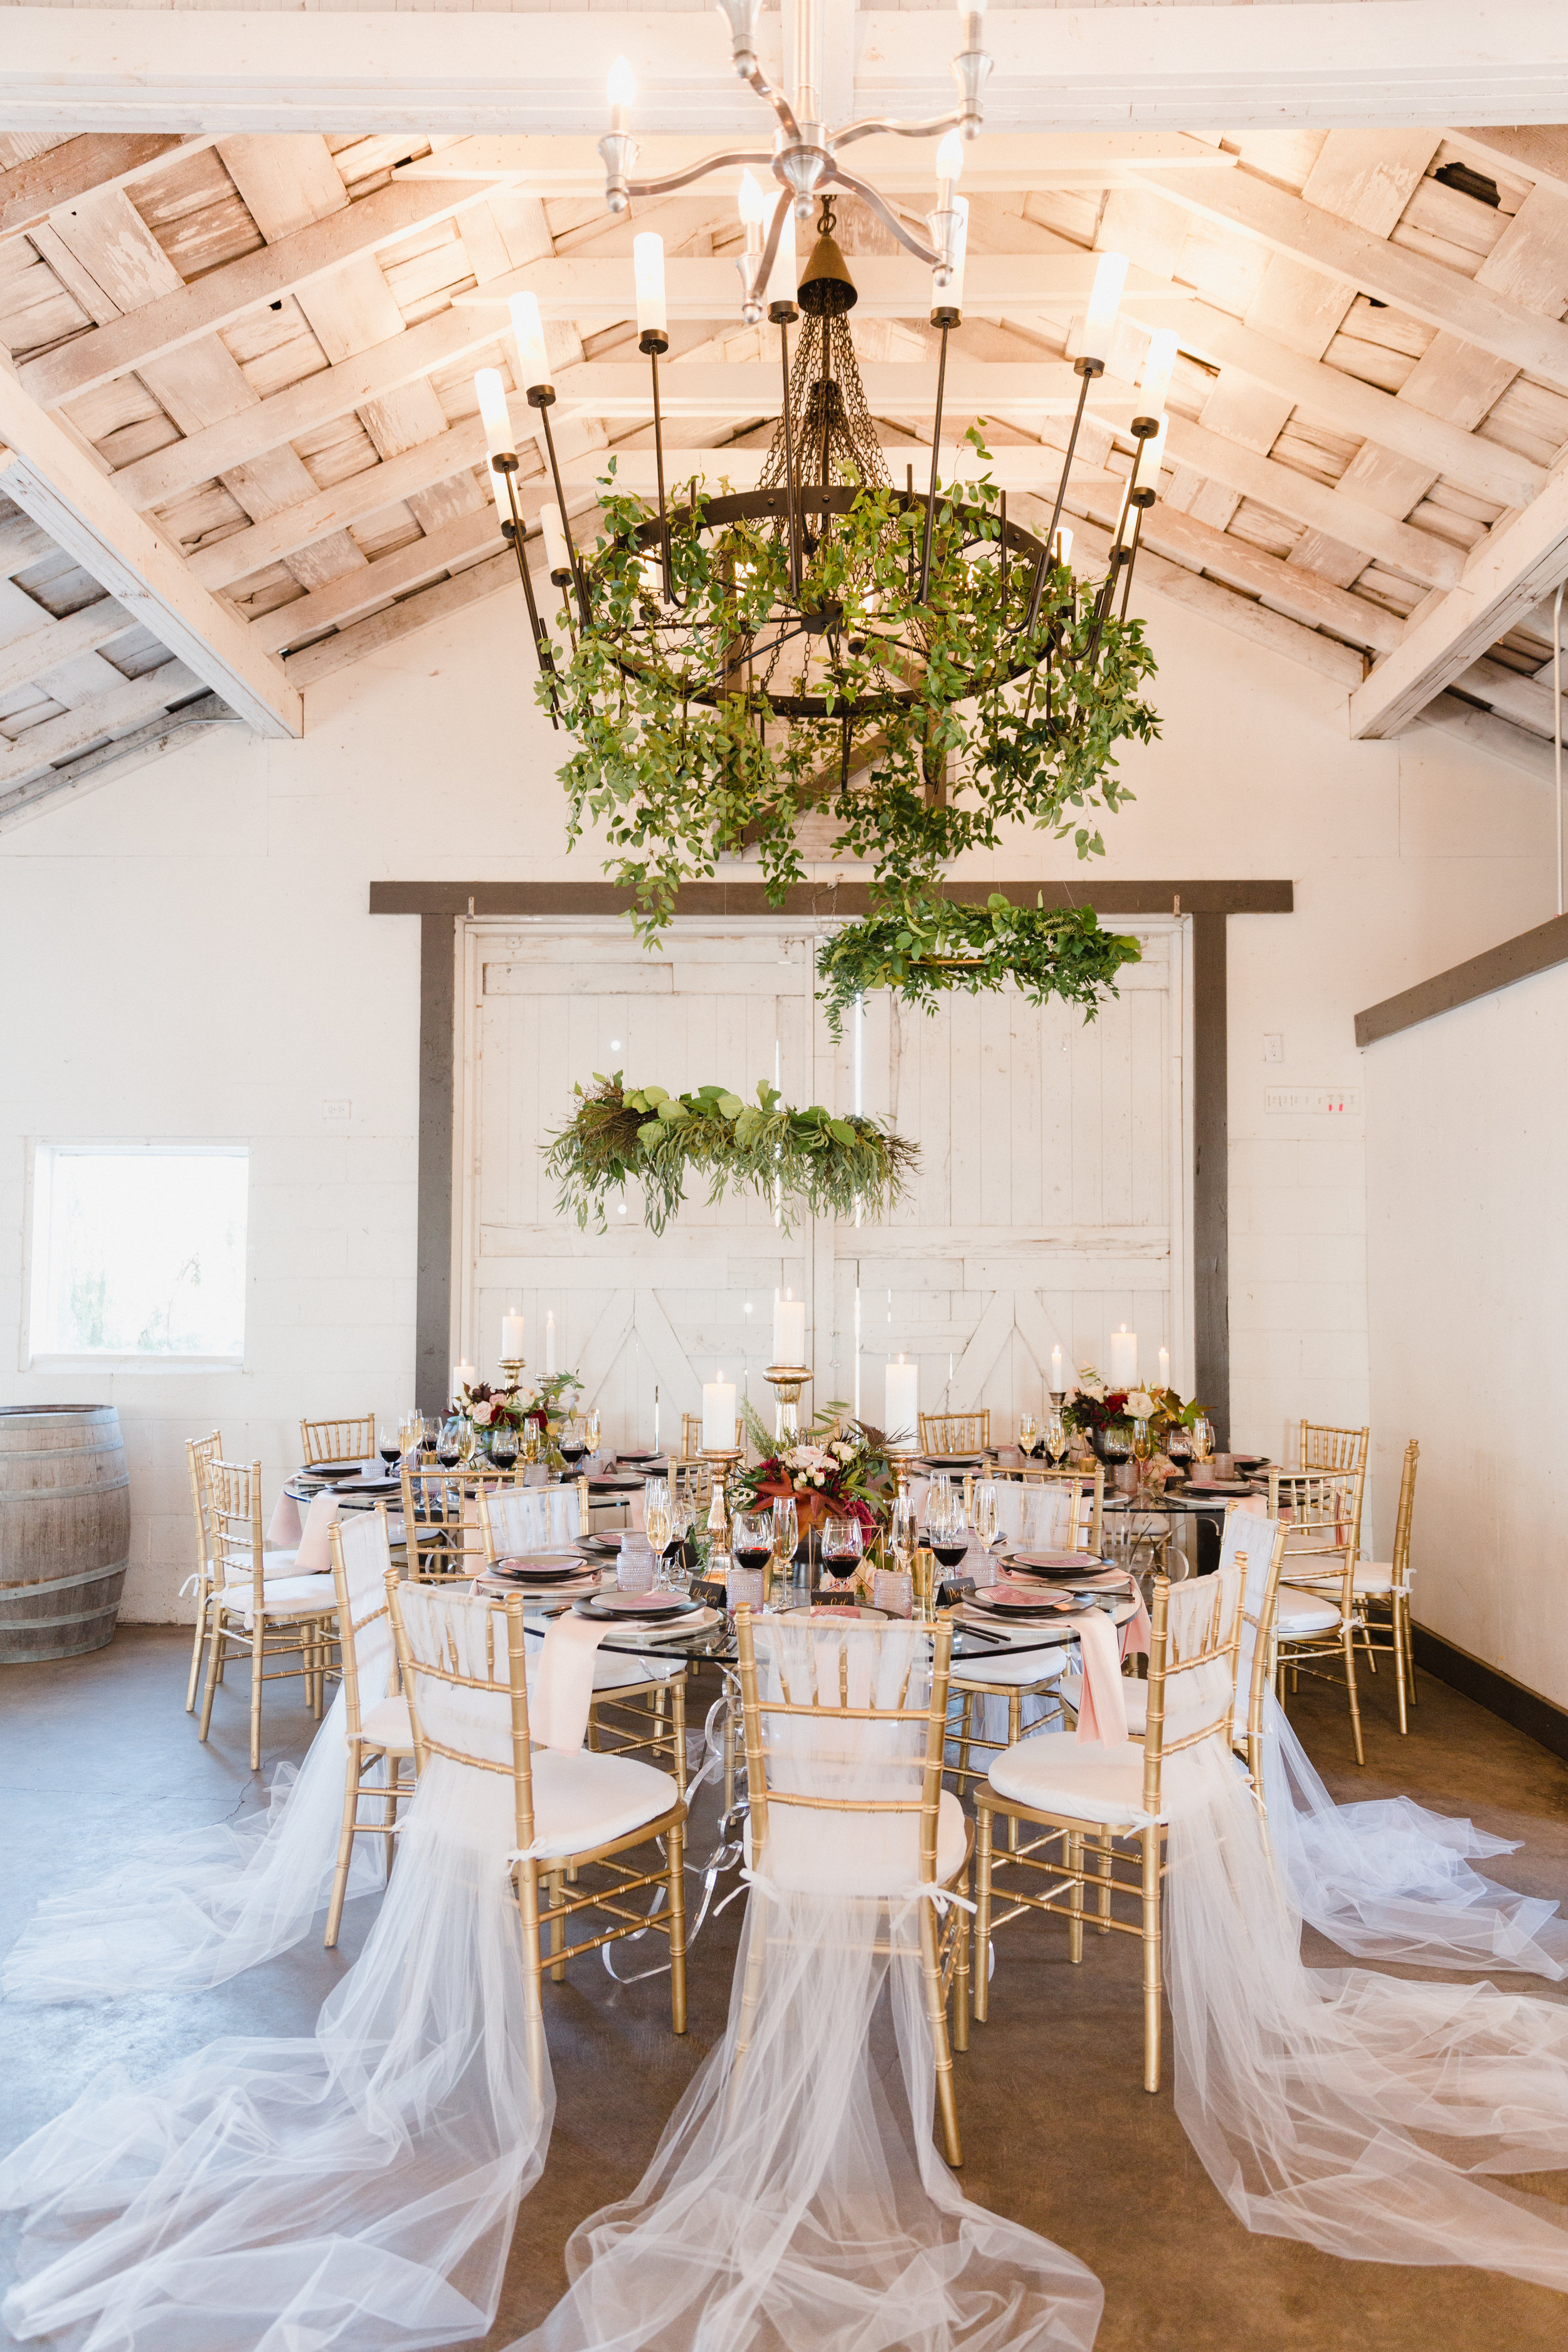 Hanging greenery chandeliers around the reception tables at Dairyland. From the Ground Up Floral - Seattle Florist.